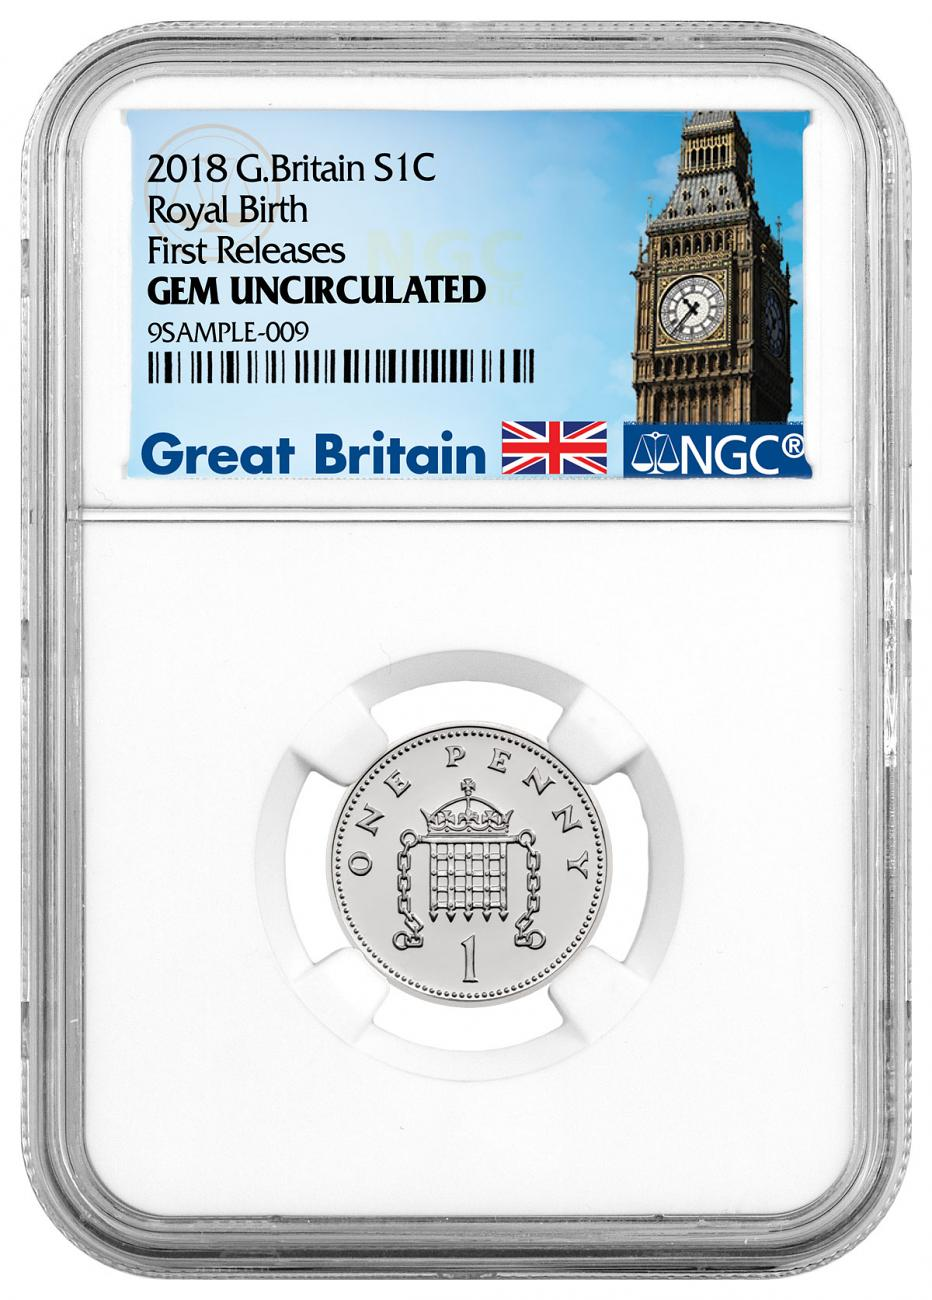 2018 Great Britain Royal Birth Silver 1 Coin NGC GEM Unc FR